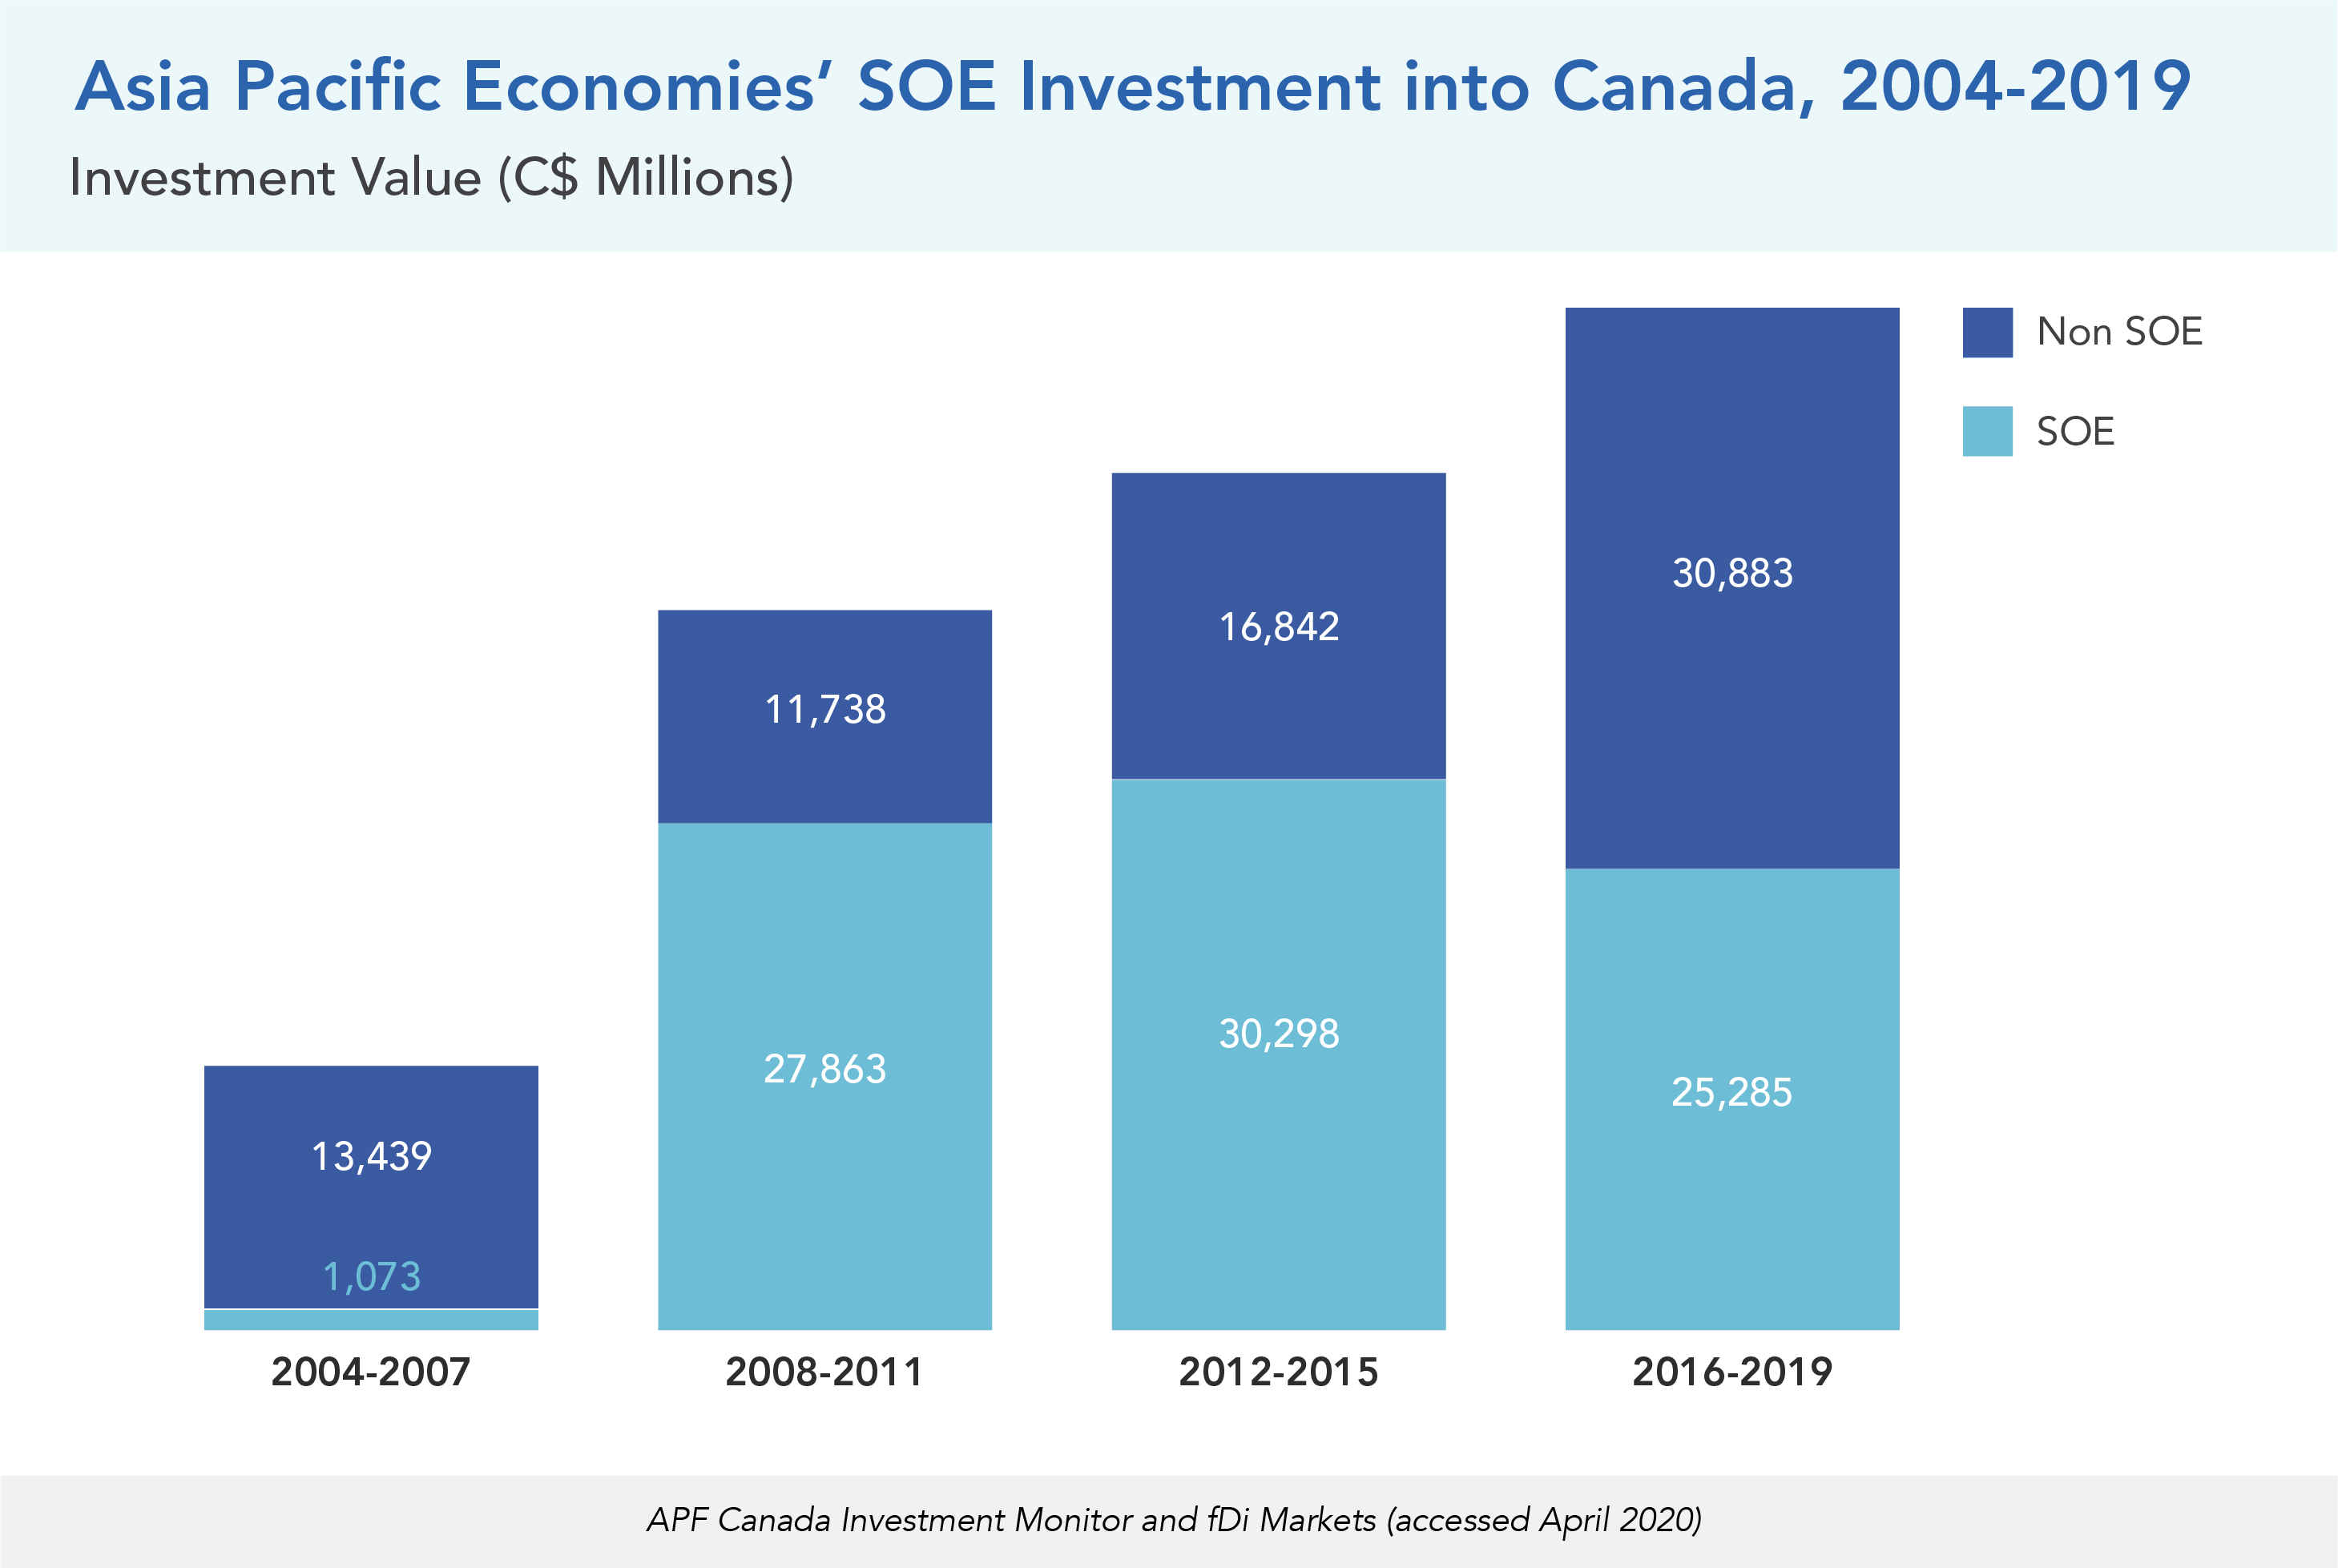 Asia Pacific Economies' SOE Investment into Canada, 2004-2019